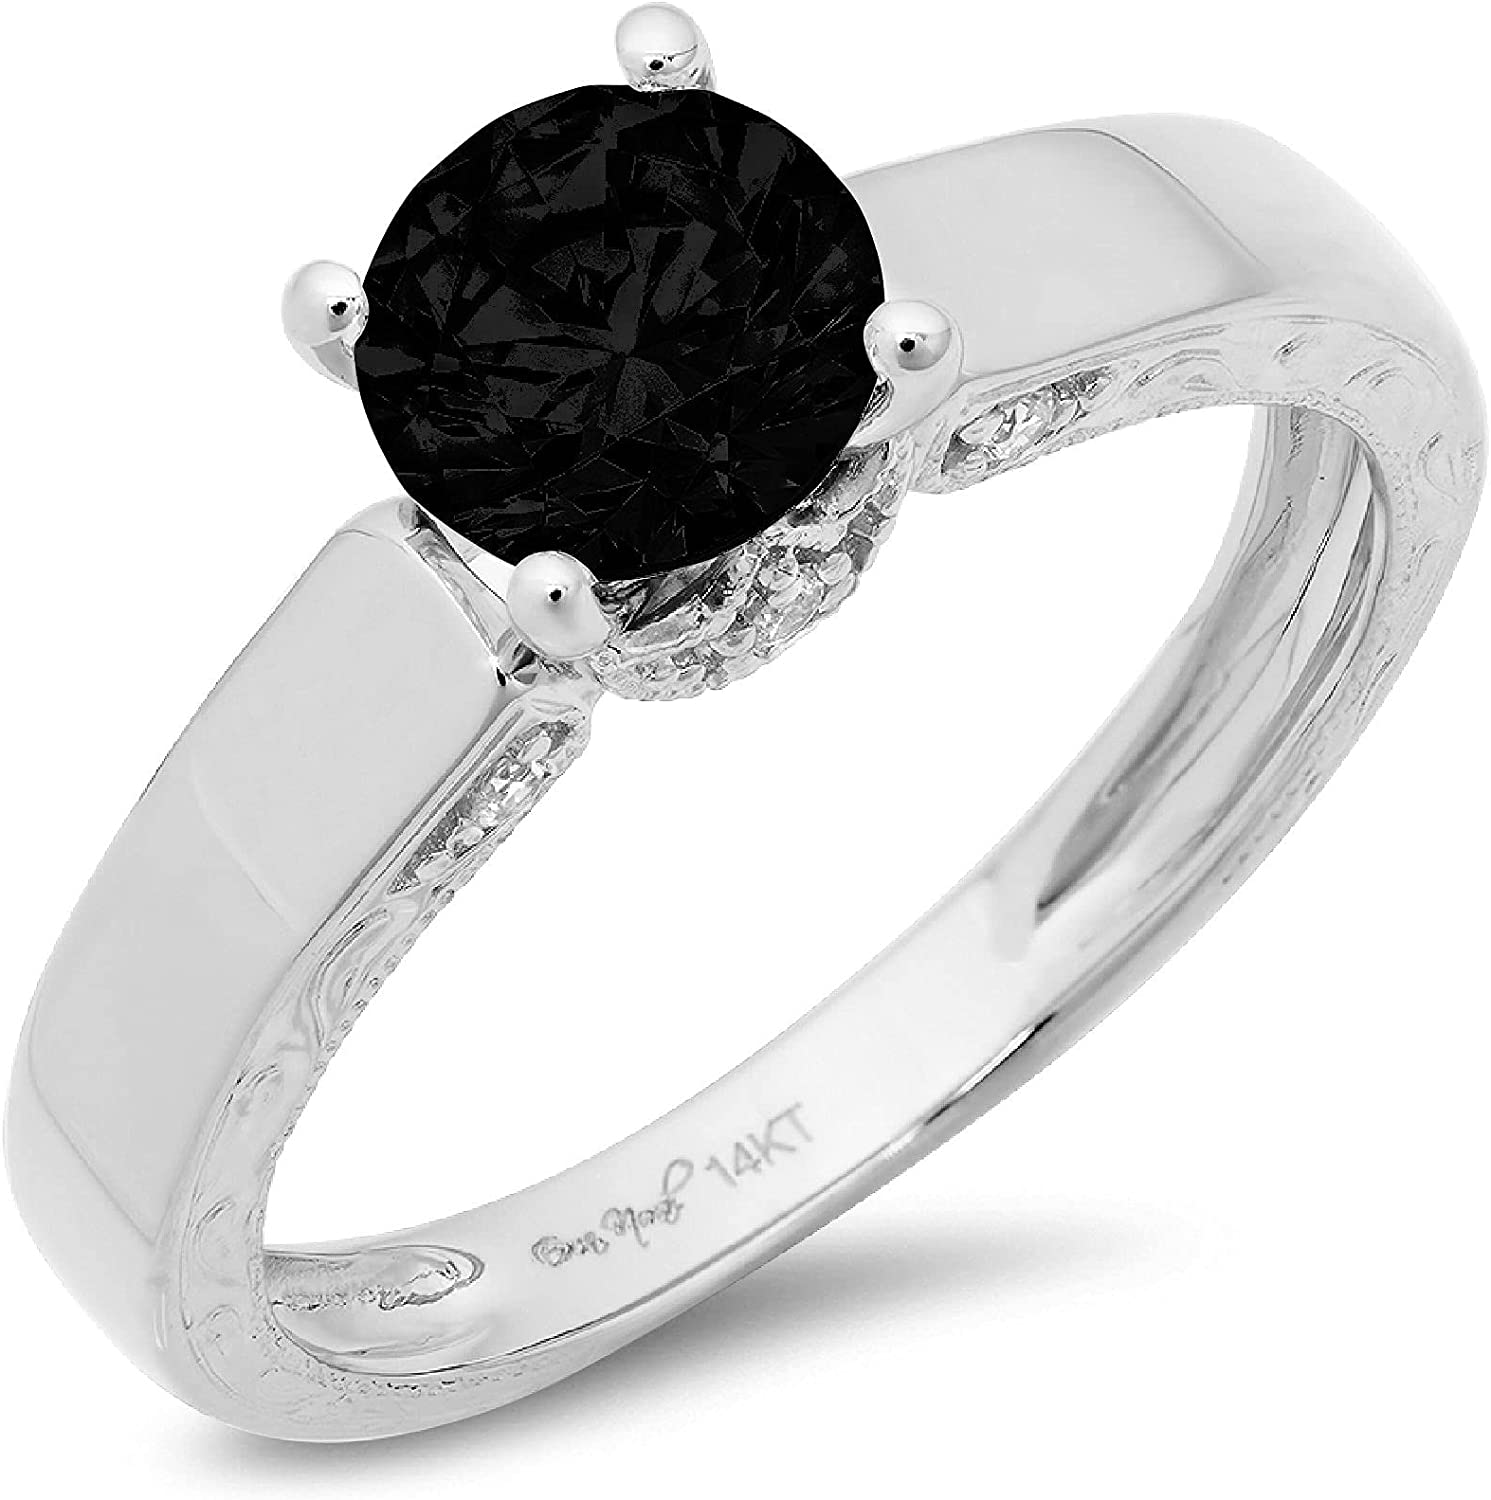 1.70ct Brilliant Round Cut Solitaire Genuine Flawless Natural Black Onyx Gemstone Engagement Promise Anniversary Bridal Wedding Accent Ring Solid 18K White Gold